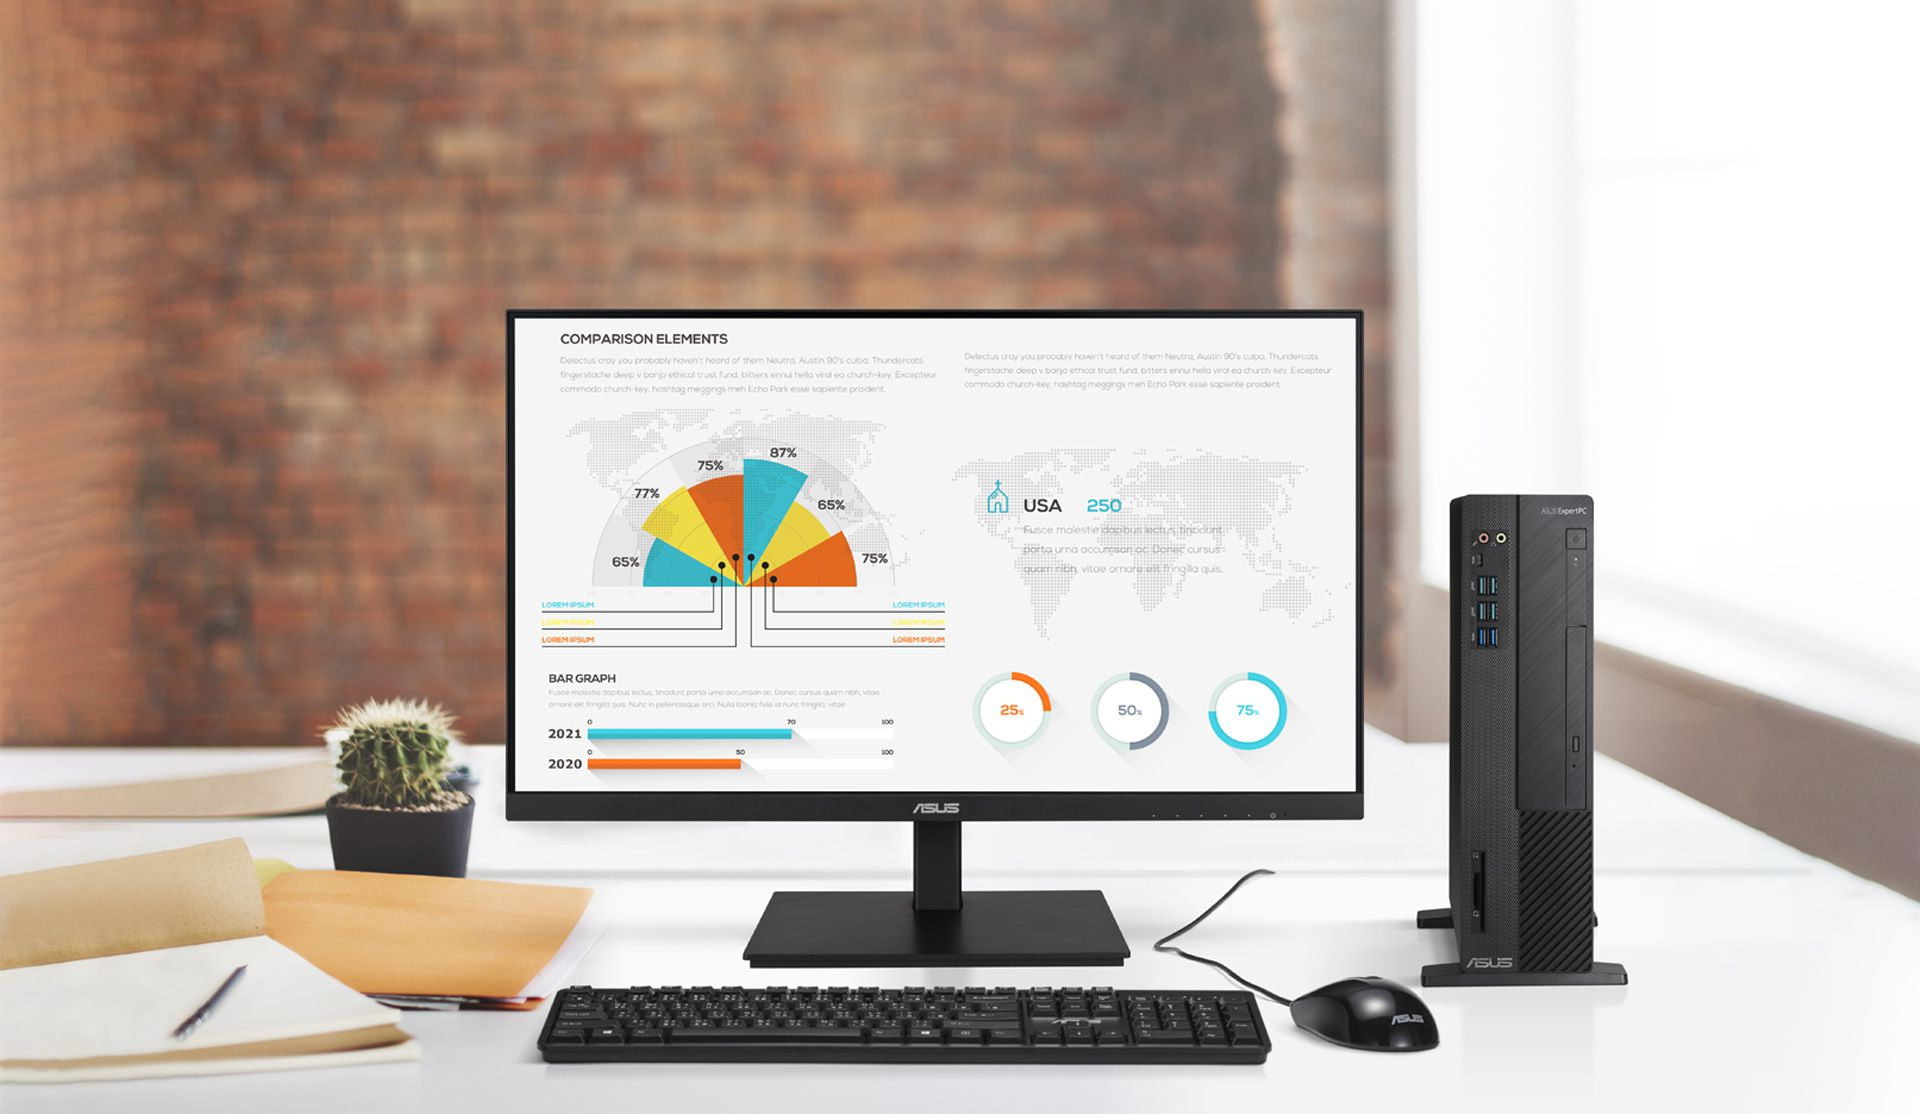 VA24DQSBY  is a 23.8-inch Full HD monitor that features an integrated Full HD (2MP) webcam, microphone array and stereo speakers for video conferencing and live-streaming.